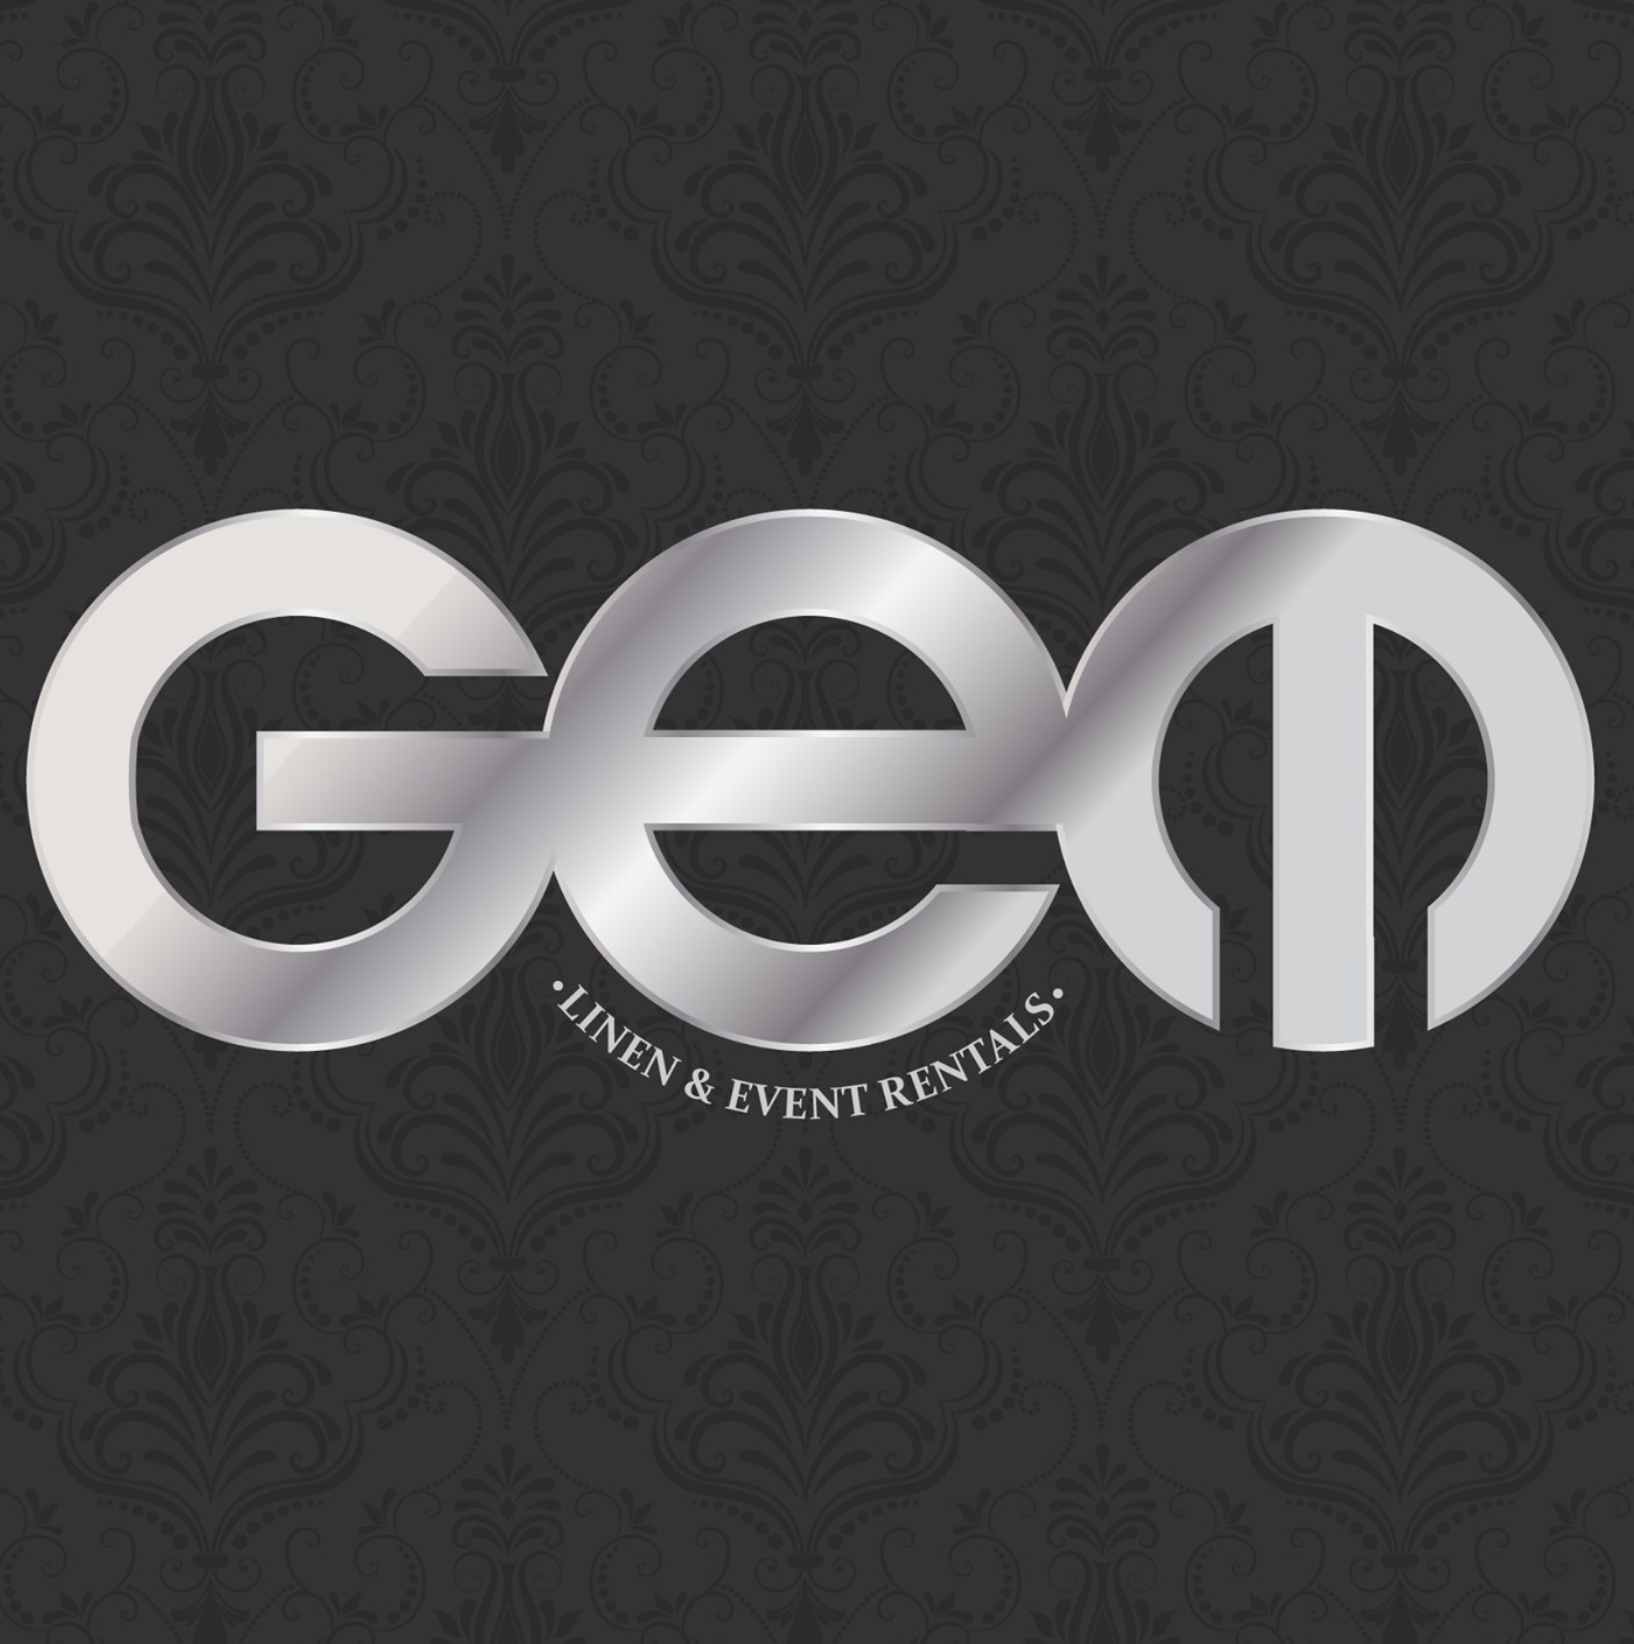 gem event rentals houston